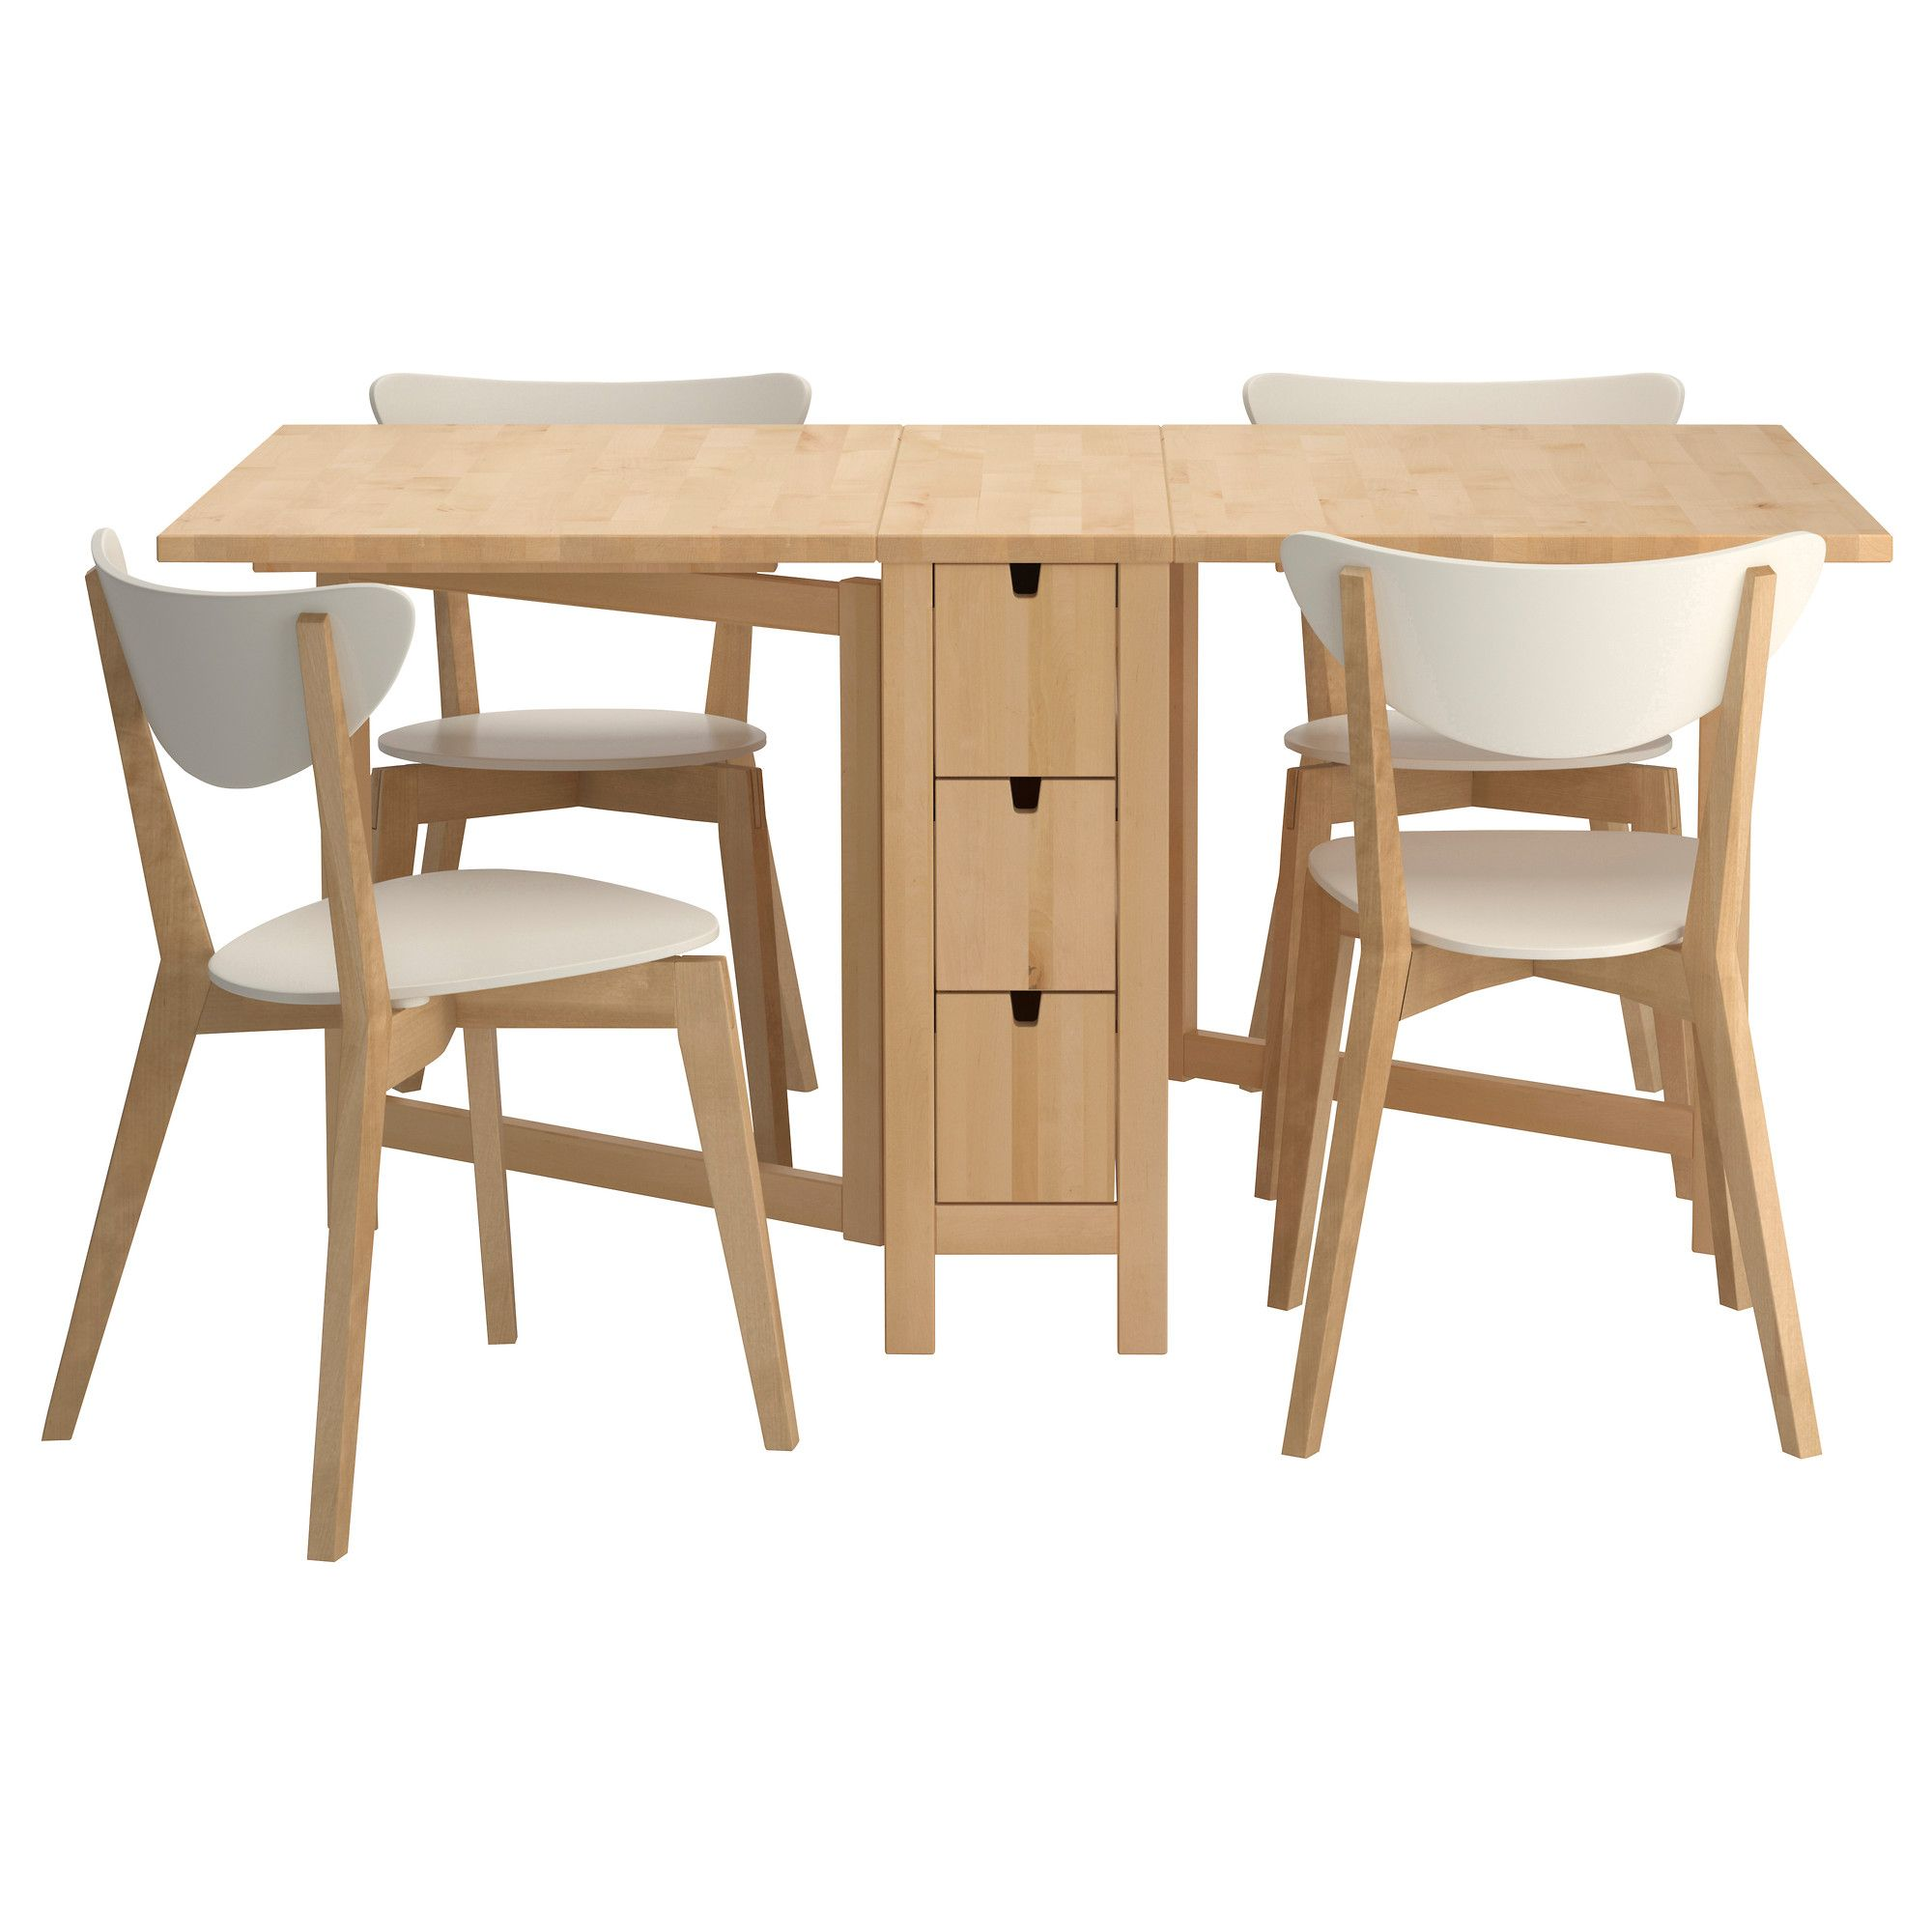 Norden nordmyra table and 4 chairs ikea for the love for Table 4 personnes ikea